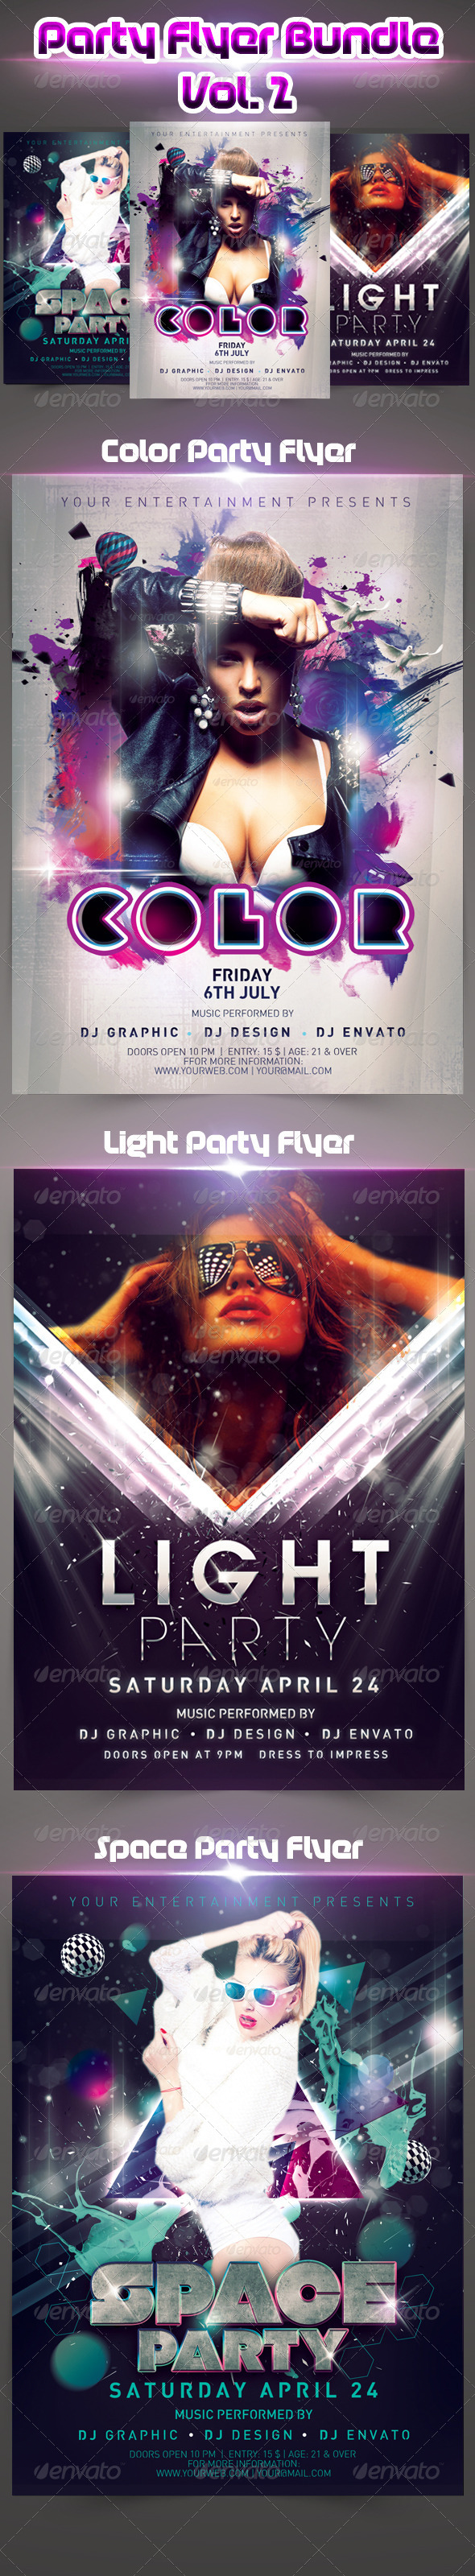 Party Flyer Bundle vol.2 - Events Flyers